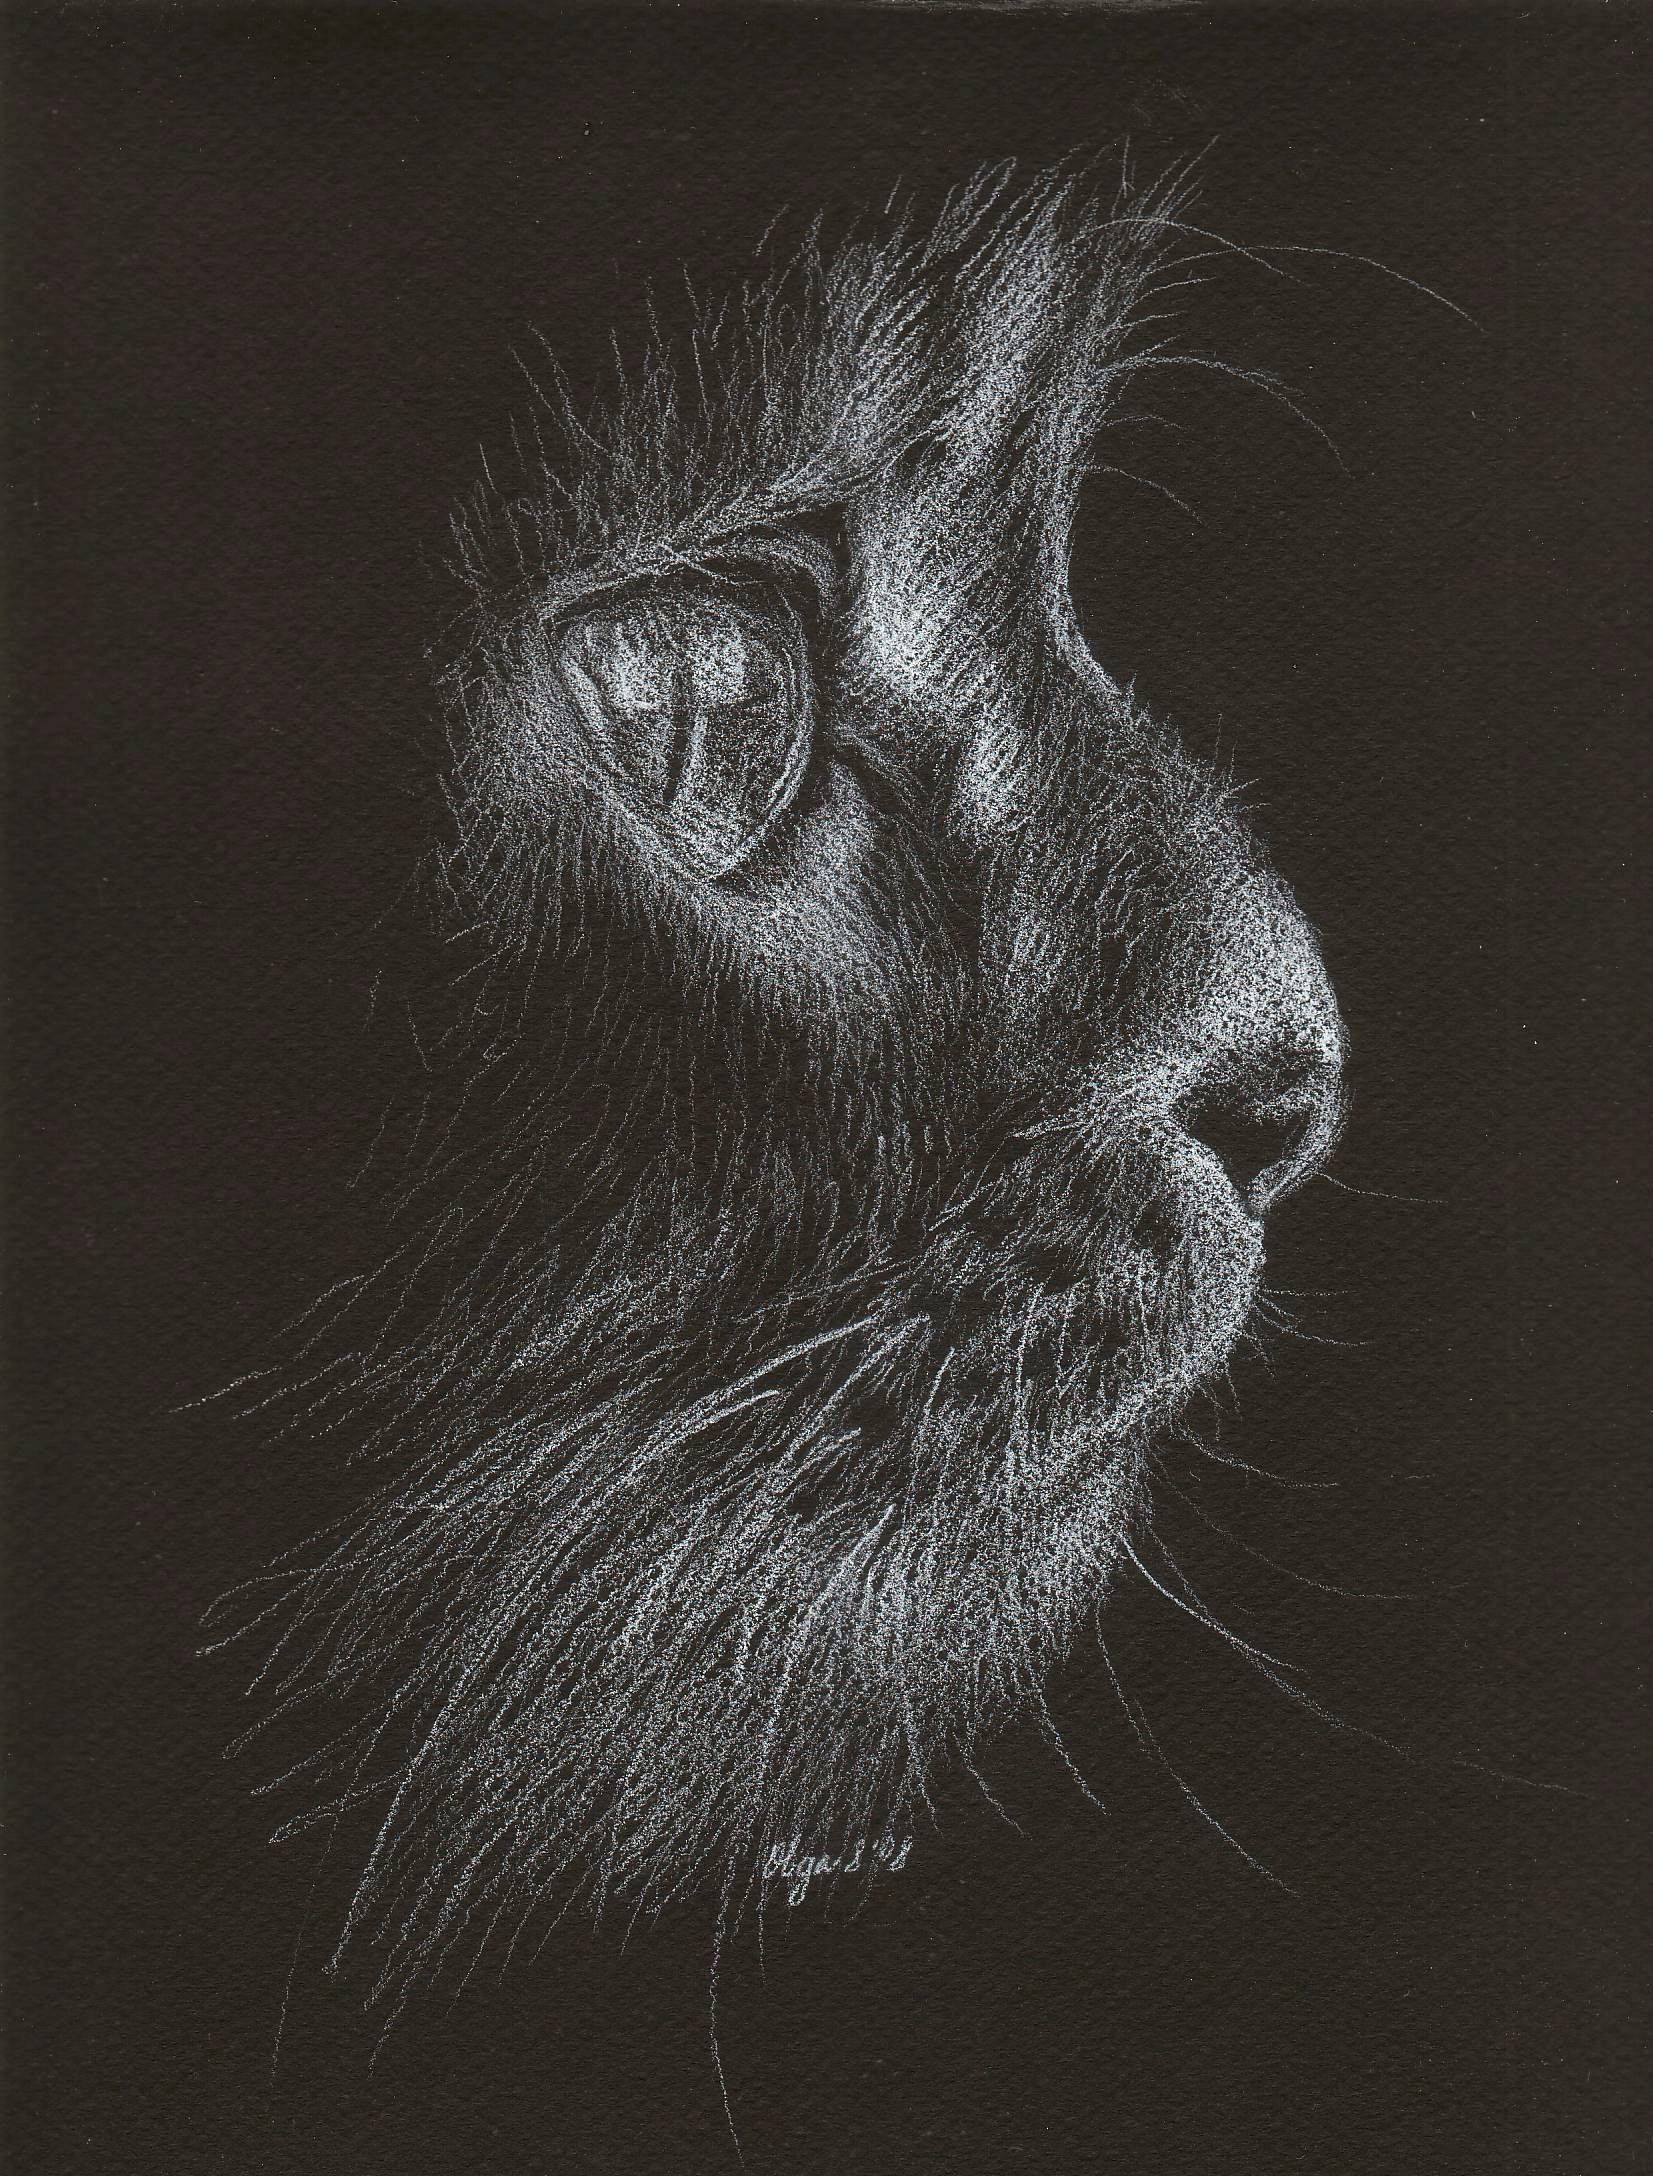 White pencil on black paper sketch oc black paper drawing